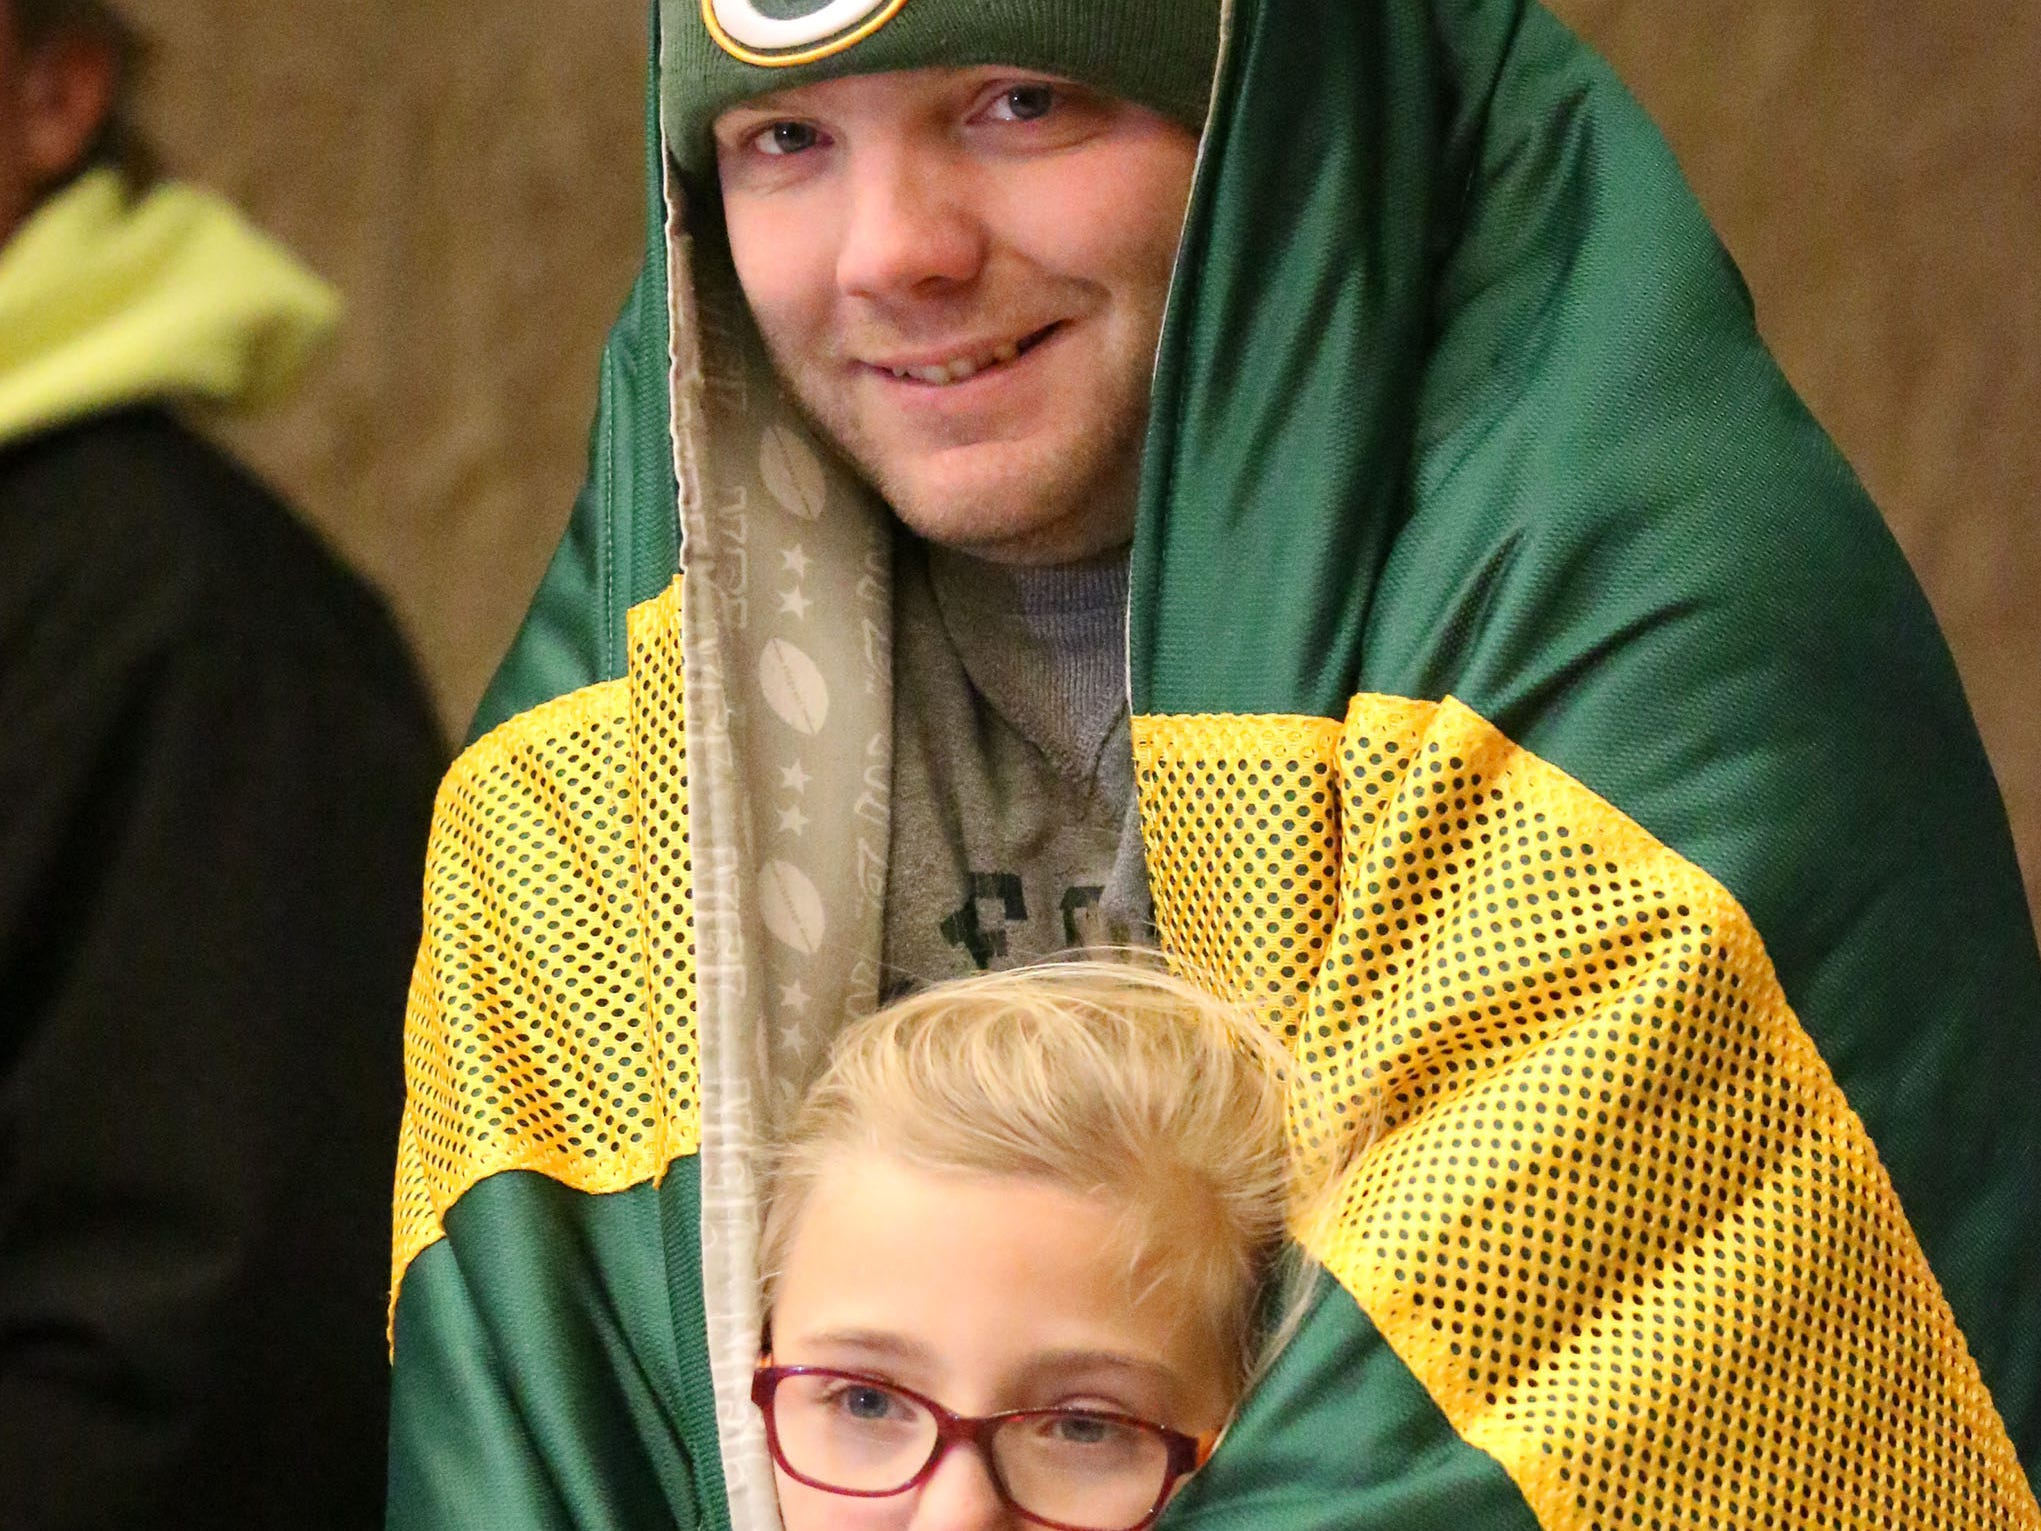 Jeremy Schwarten, of Sheboygan, keeps a blanket wrapped around his daughter Madyson, 8, during the 26th Annual Jaycees Holiday Parade, Sunday, November 25, 2018 in Sheboygan, Wis.